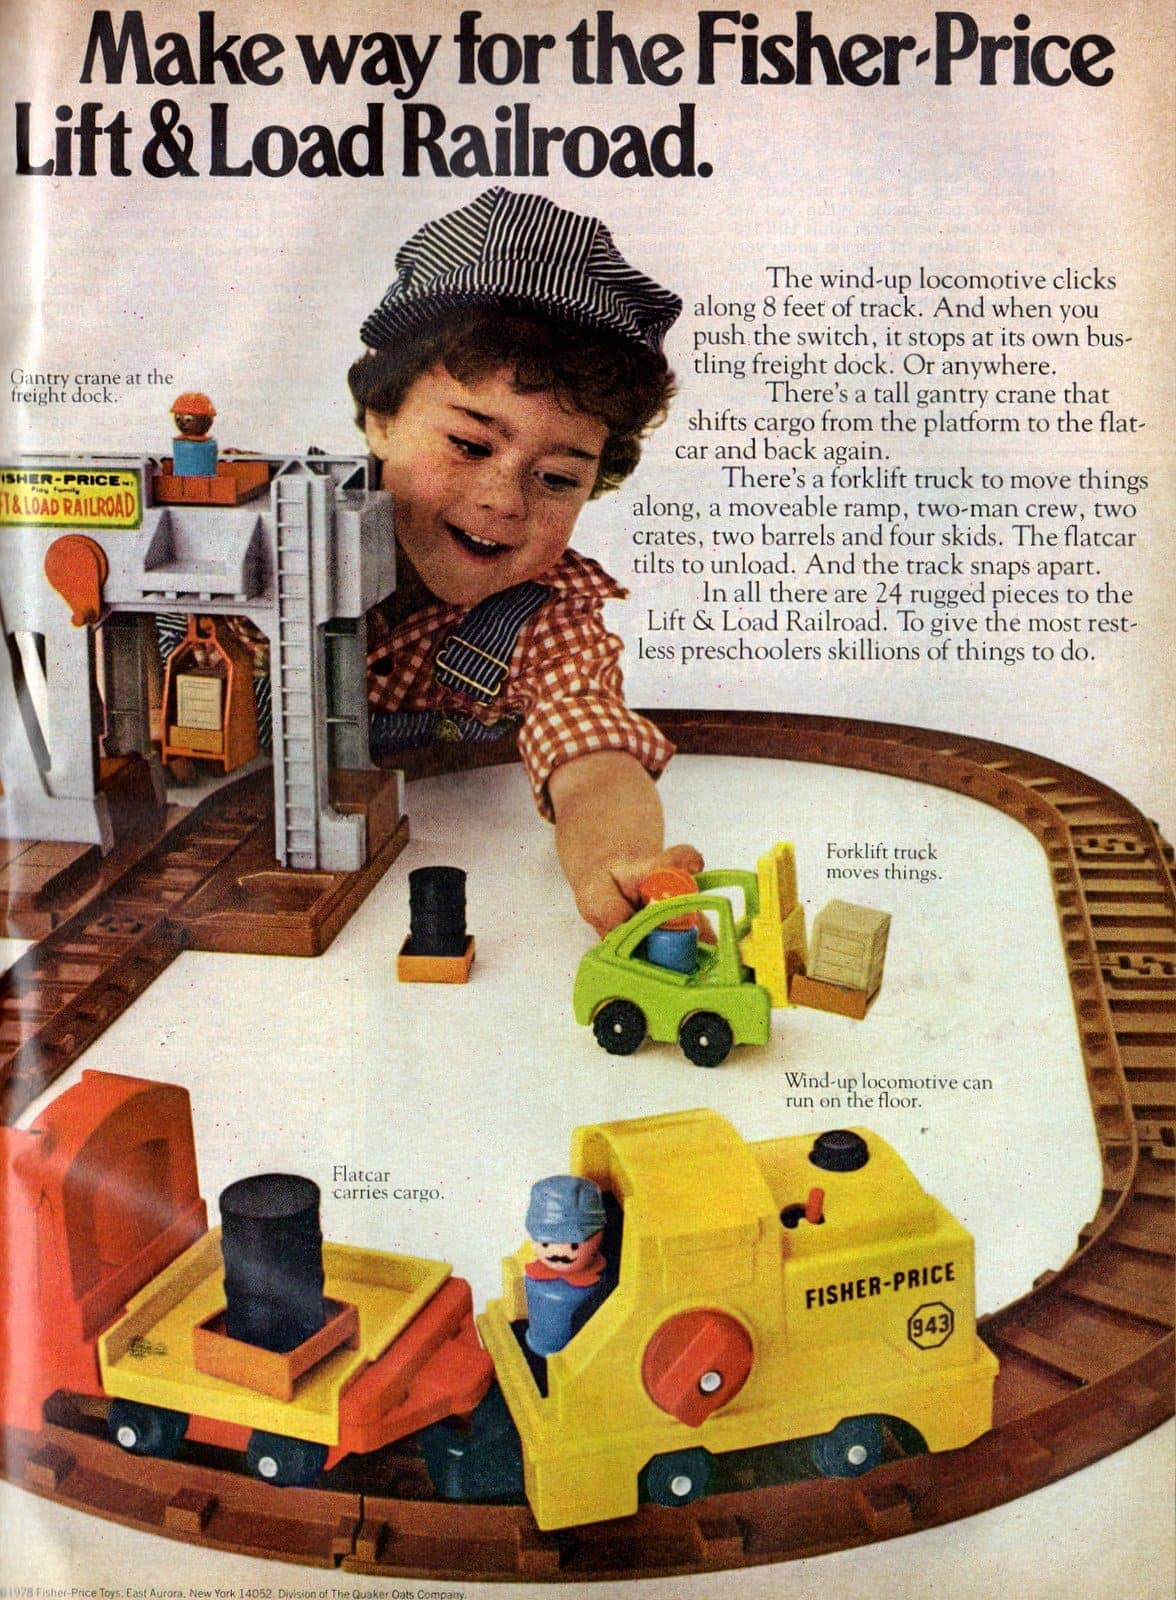 Make way for the Fisher-Price Lift & Load Railroad